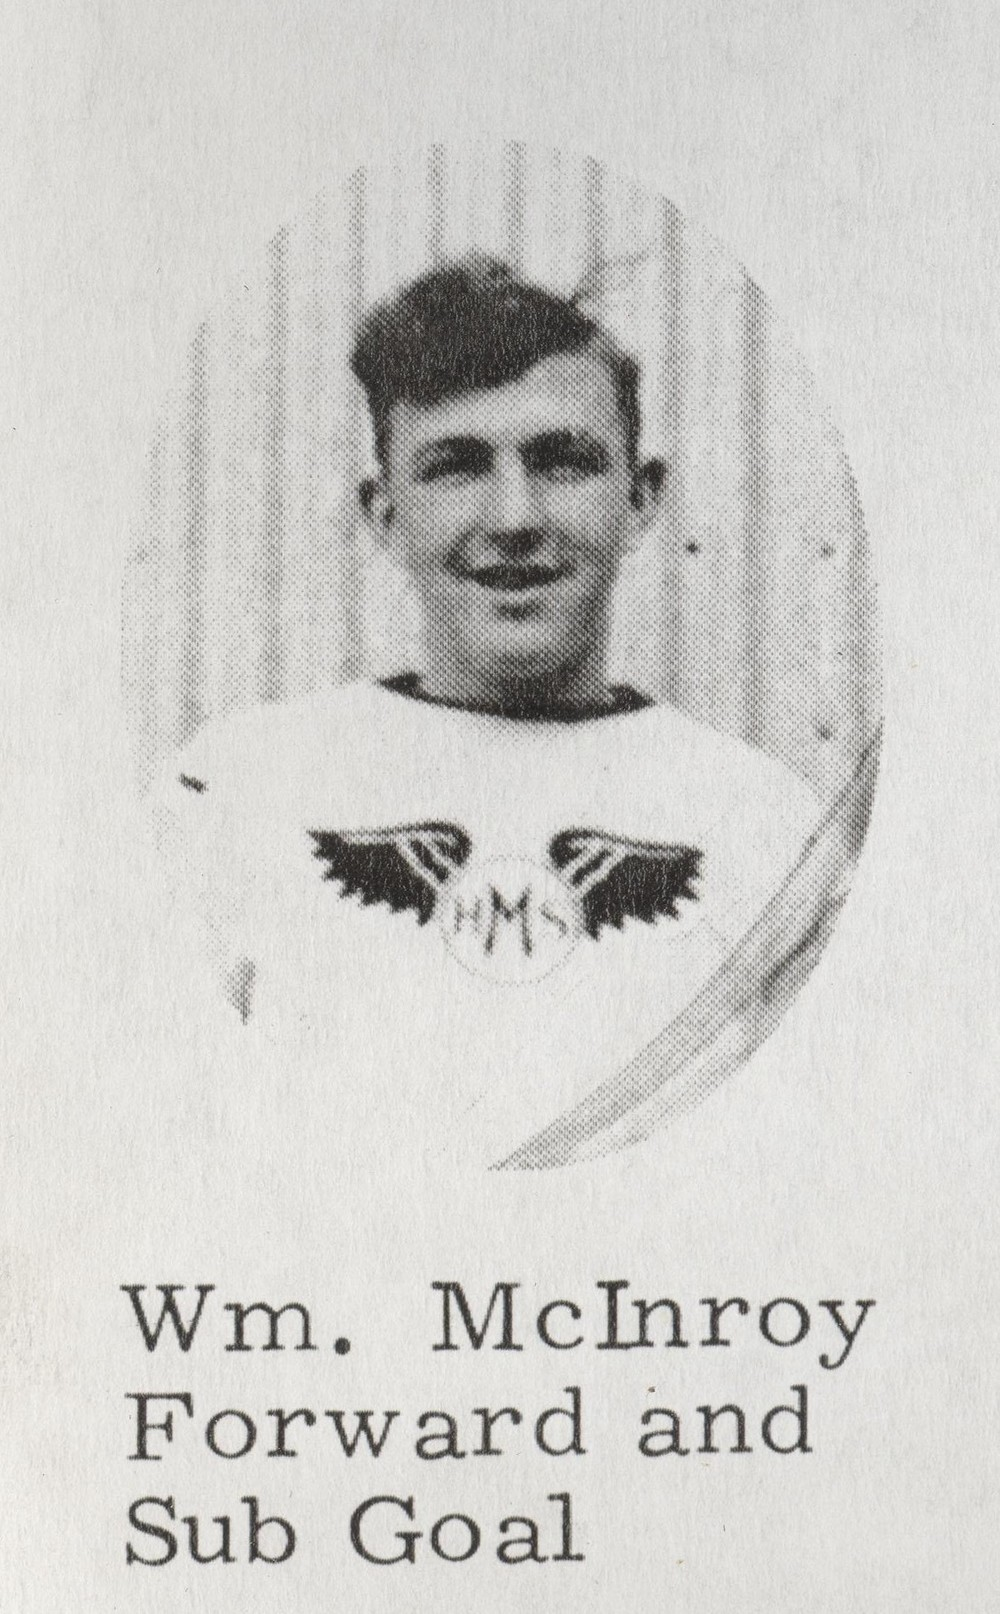 Wm McInroy - Forward and Sub goal.jpg